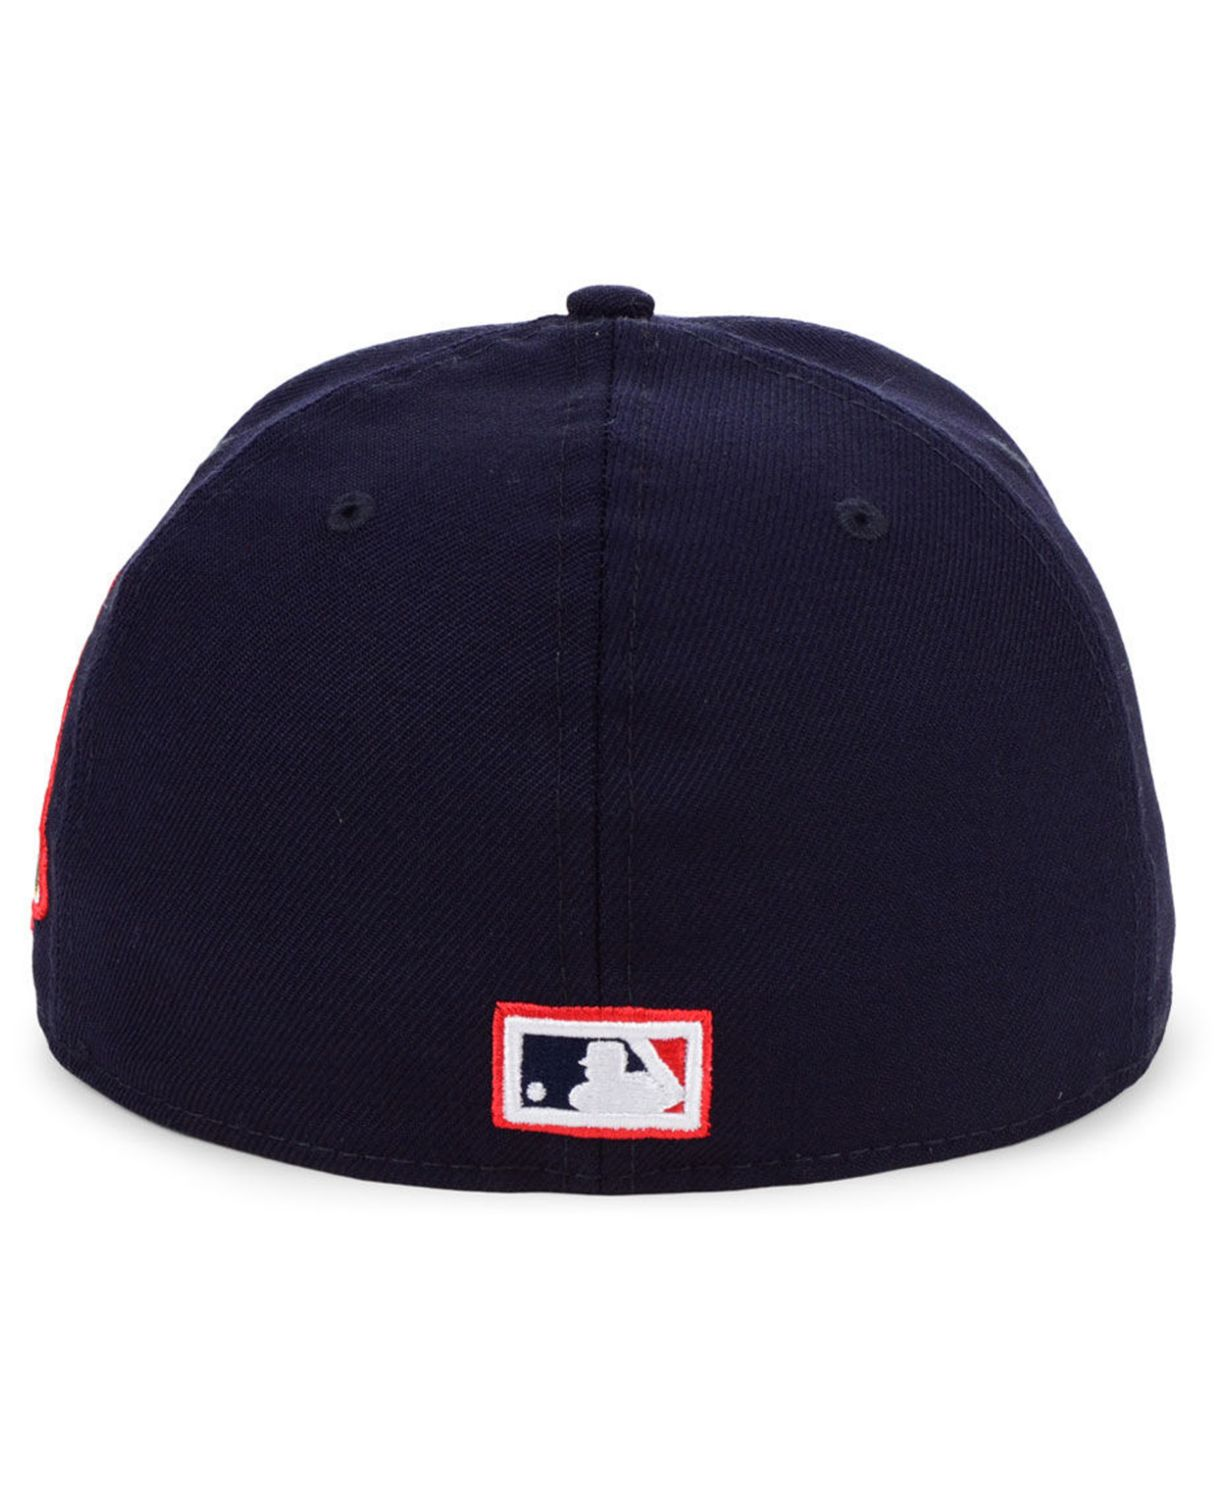 New Era Milwaukee Braves World Series Patch 59FIFTY Fitted Cap & Reviews - Sports Fan Shop By Lids - Men - Macy's